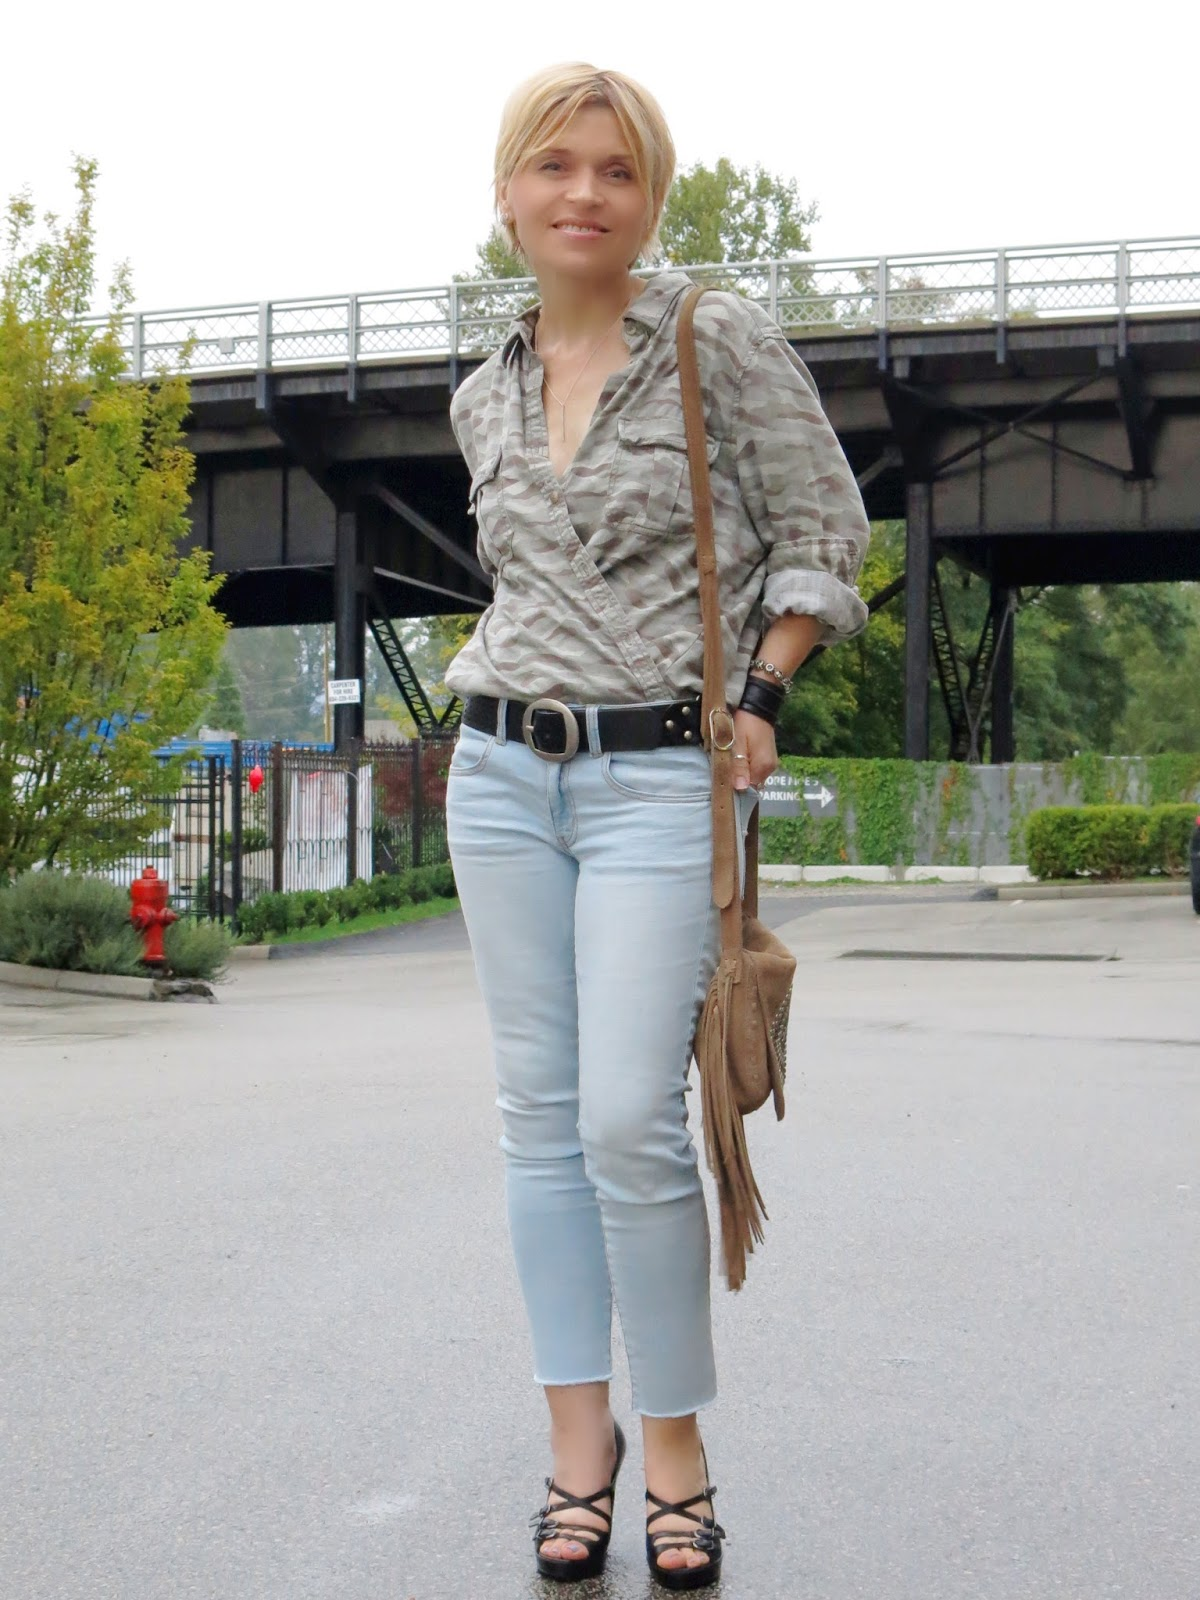 styling an oversized camo shirt with skinny jeans, strappy shoes, and a fringy Steve Madden bag